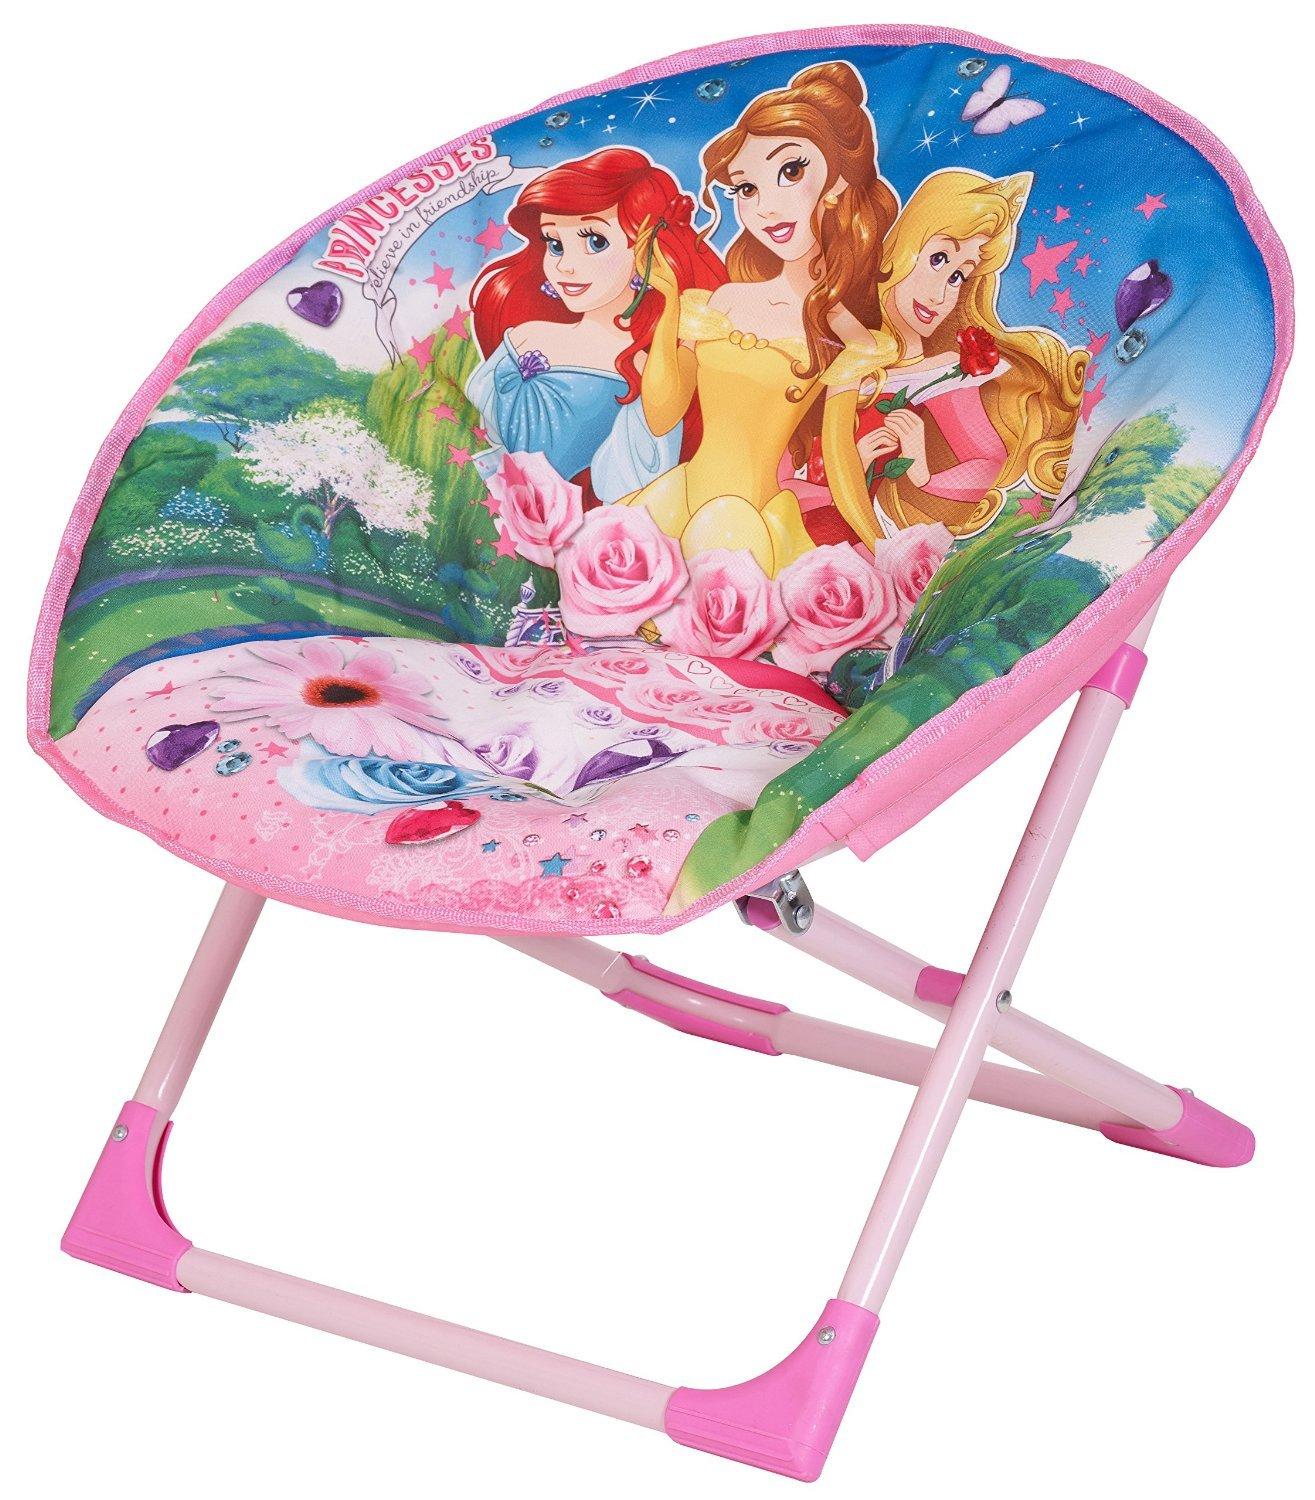 Disney Moon Chair Avengers, Folding Round Soft Padded Chair for toddlers, kids JNH Europe Ltd MCAV5